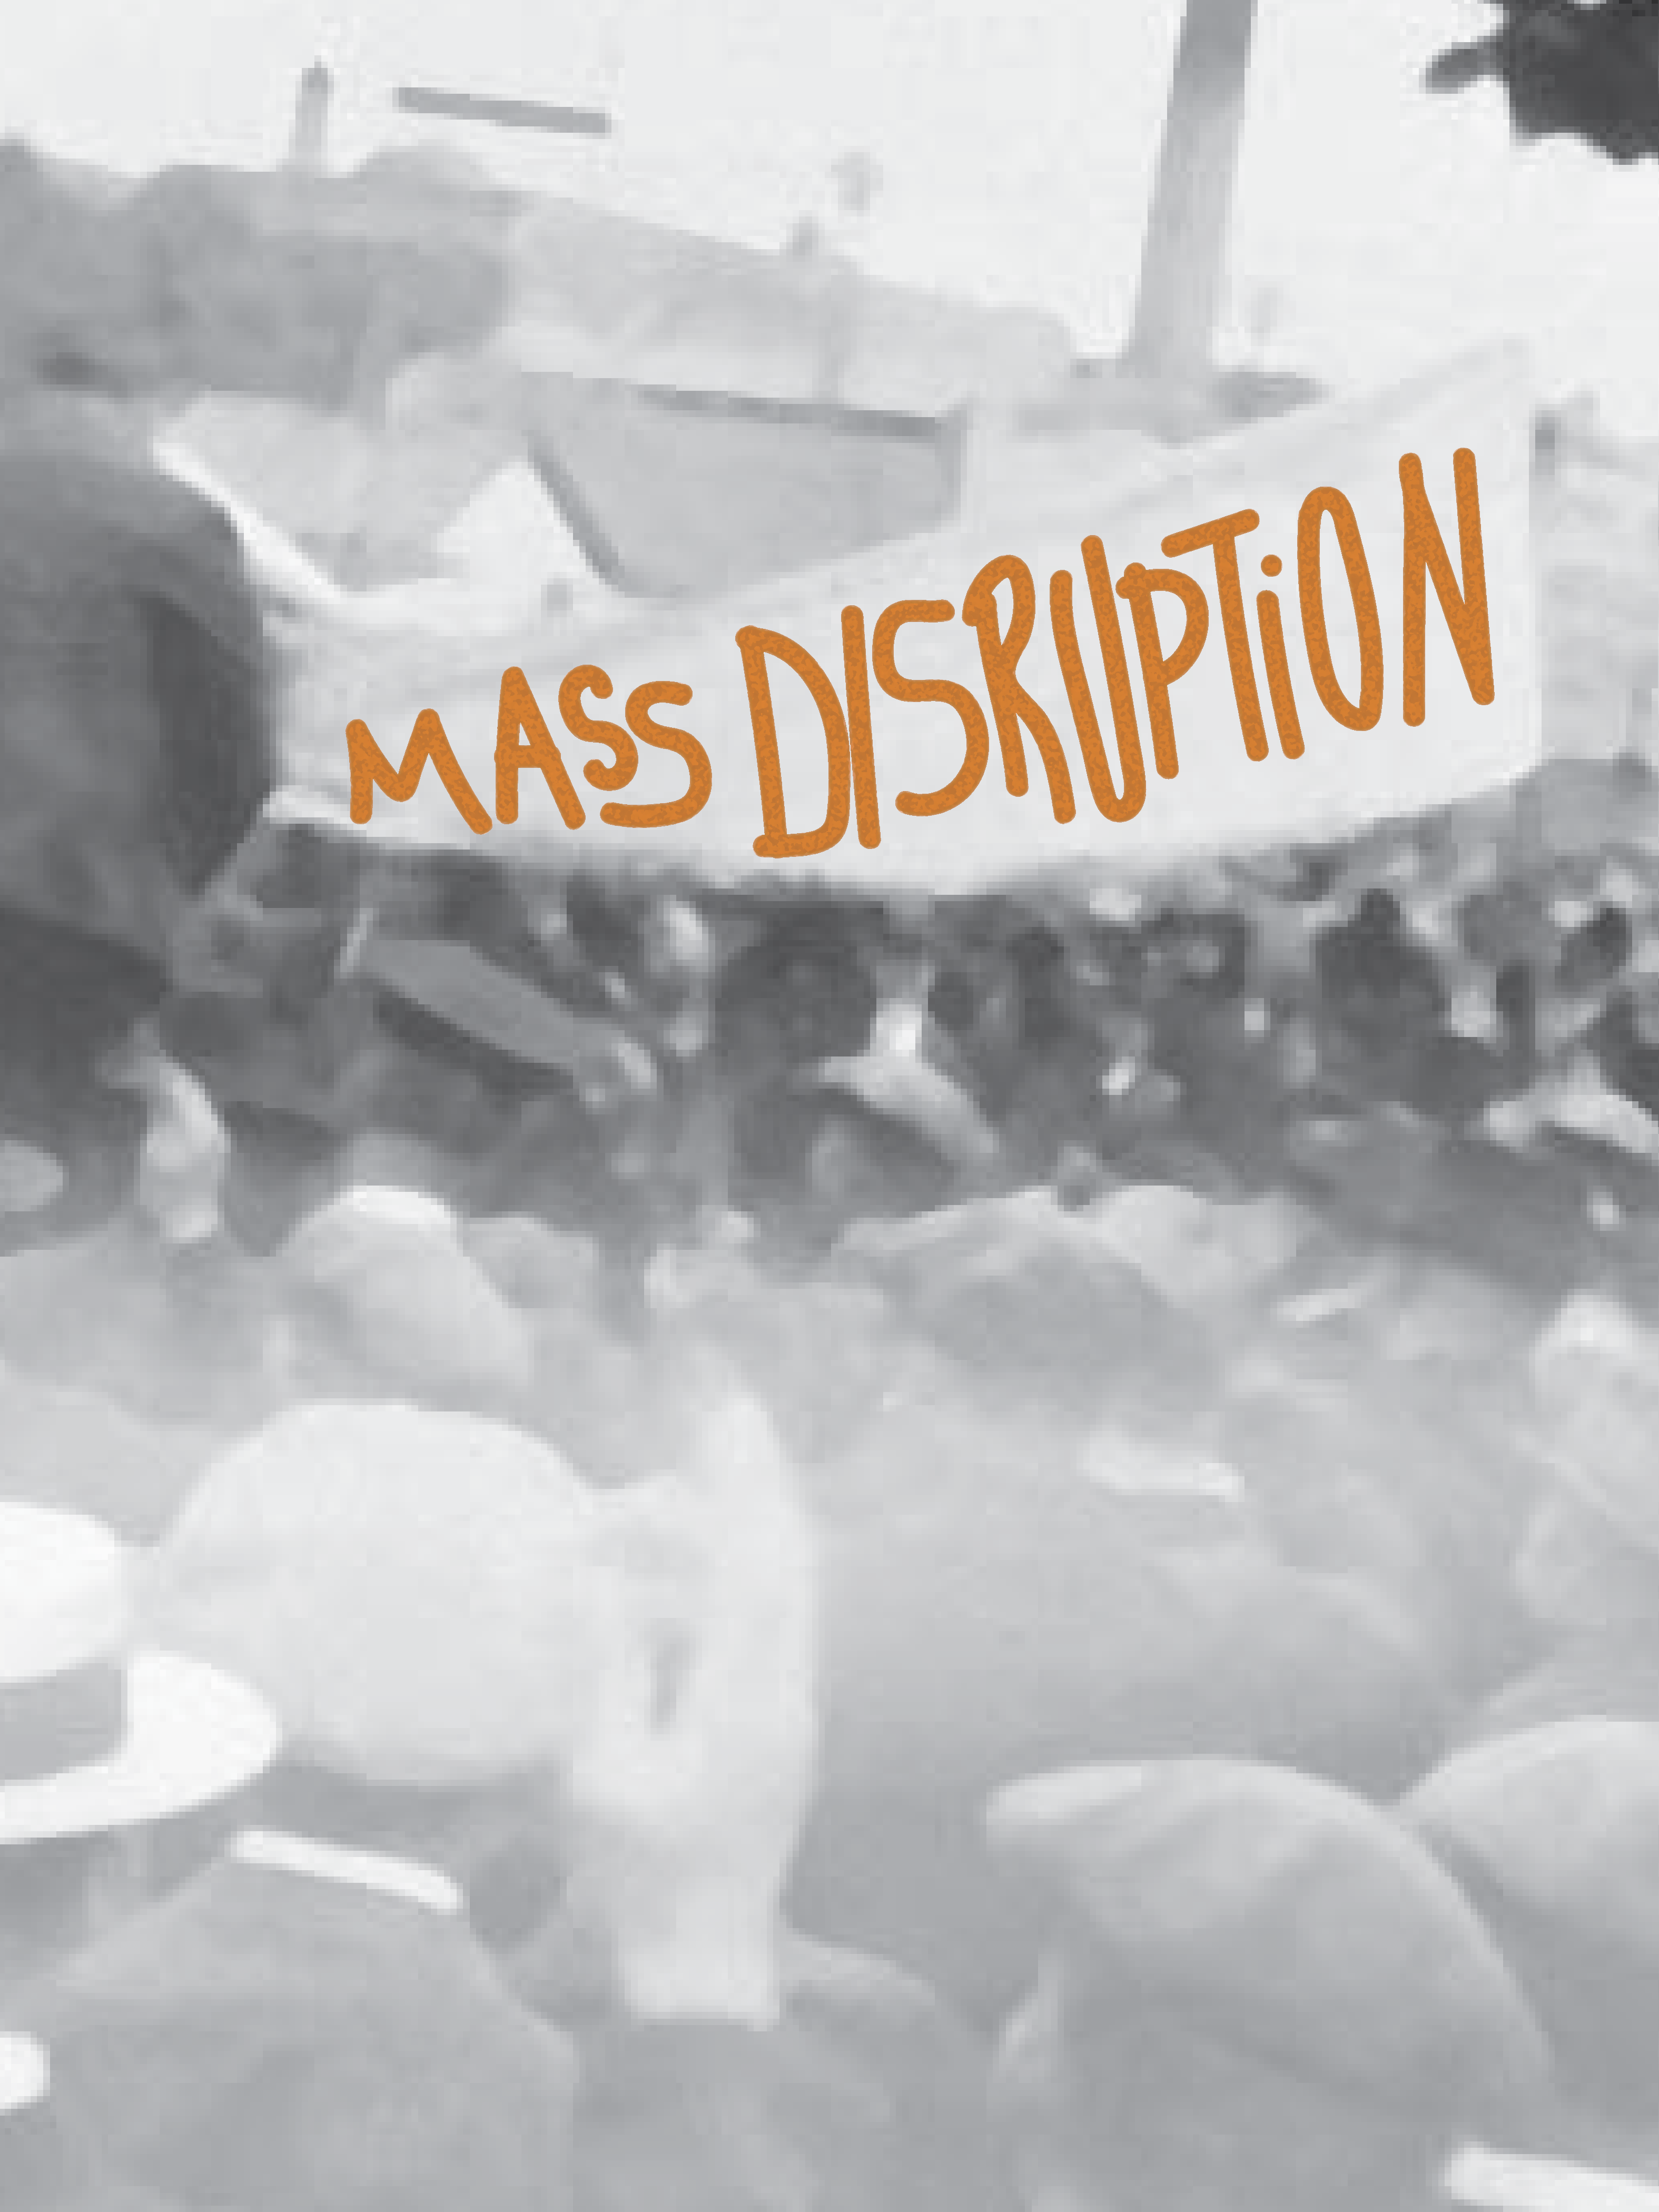 Mass Disruption What does it mean to accurately represent the history of unrest?